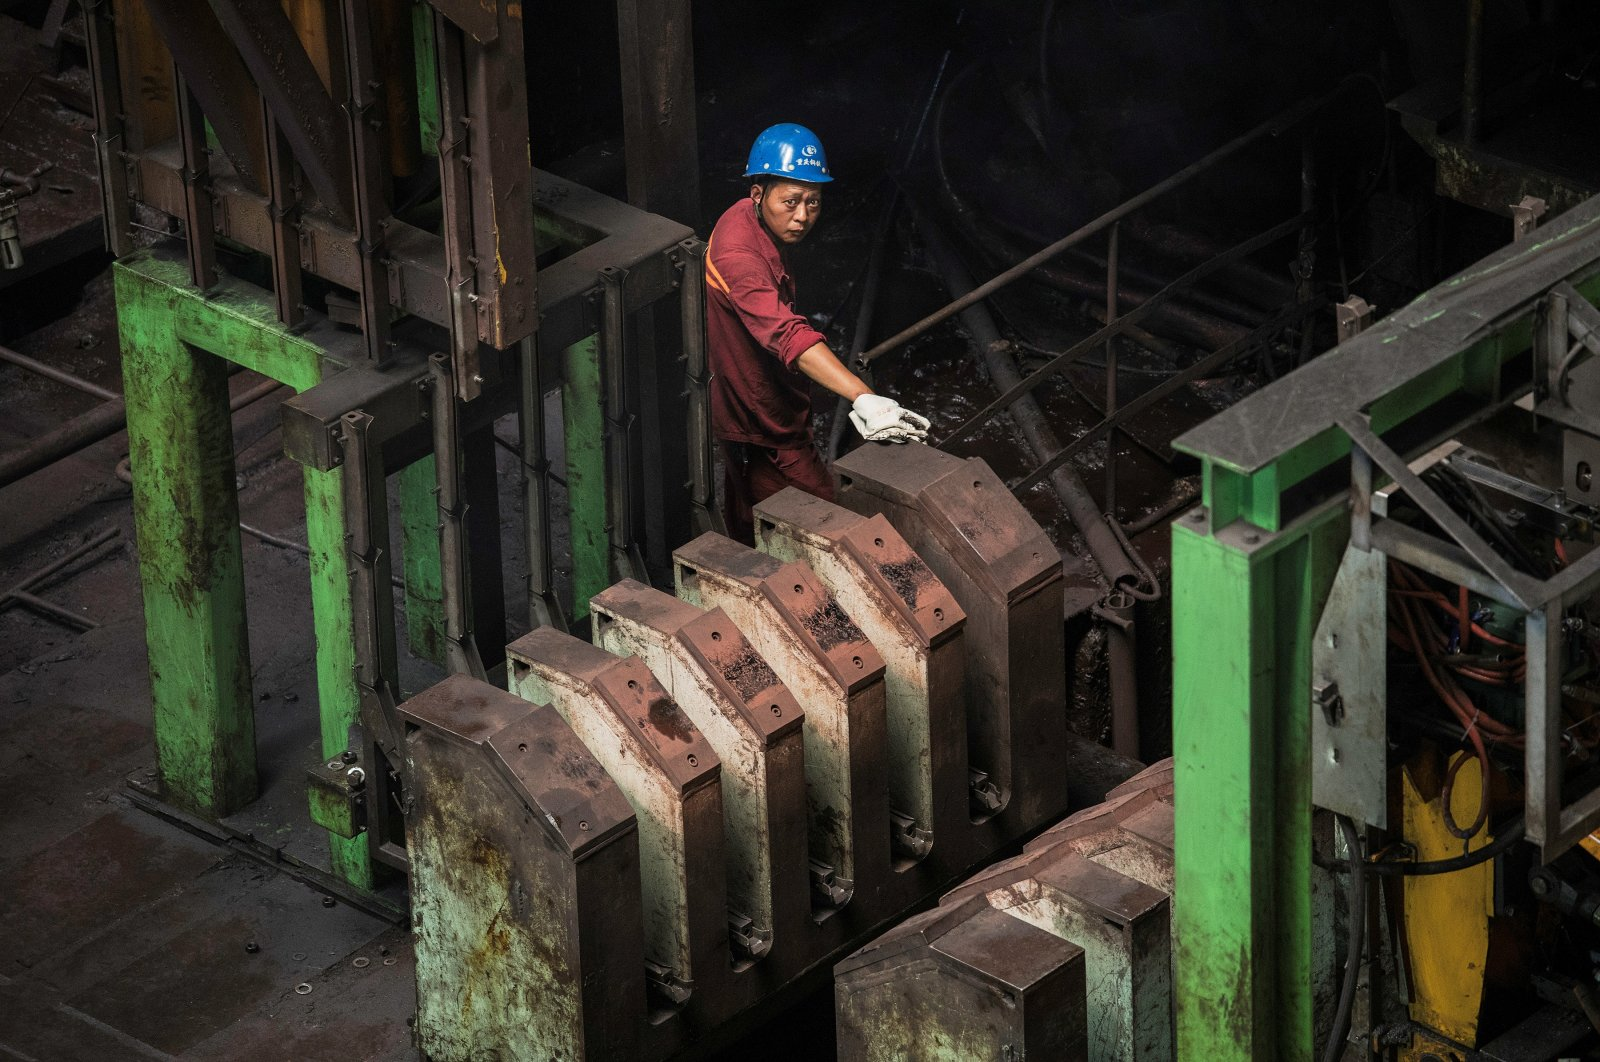 A worker is seen at a hot rolling production line at the Chongqing Iron and Steel plant in the Changshou district of Chongqing, China, Aug. 6, 2019. (Reuters Photo)